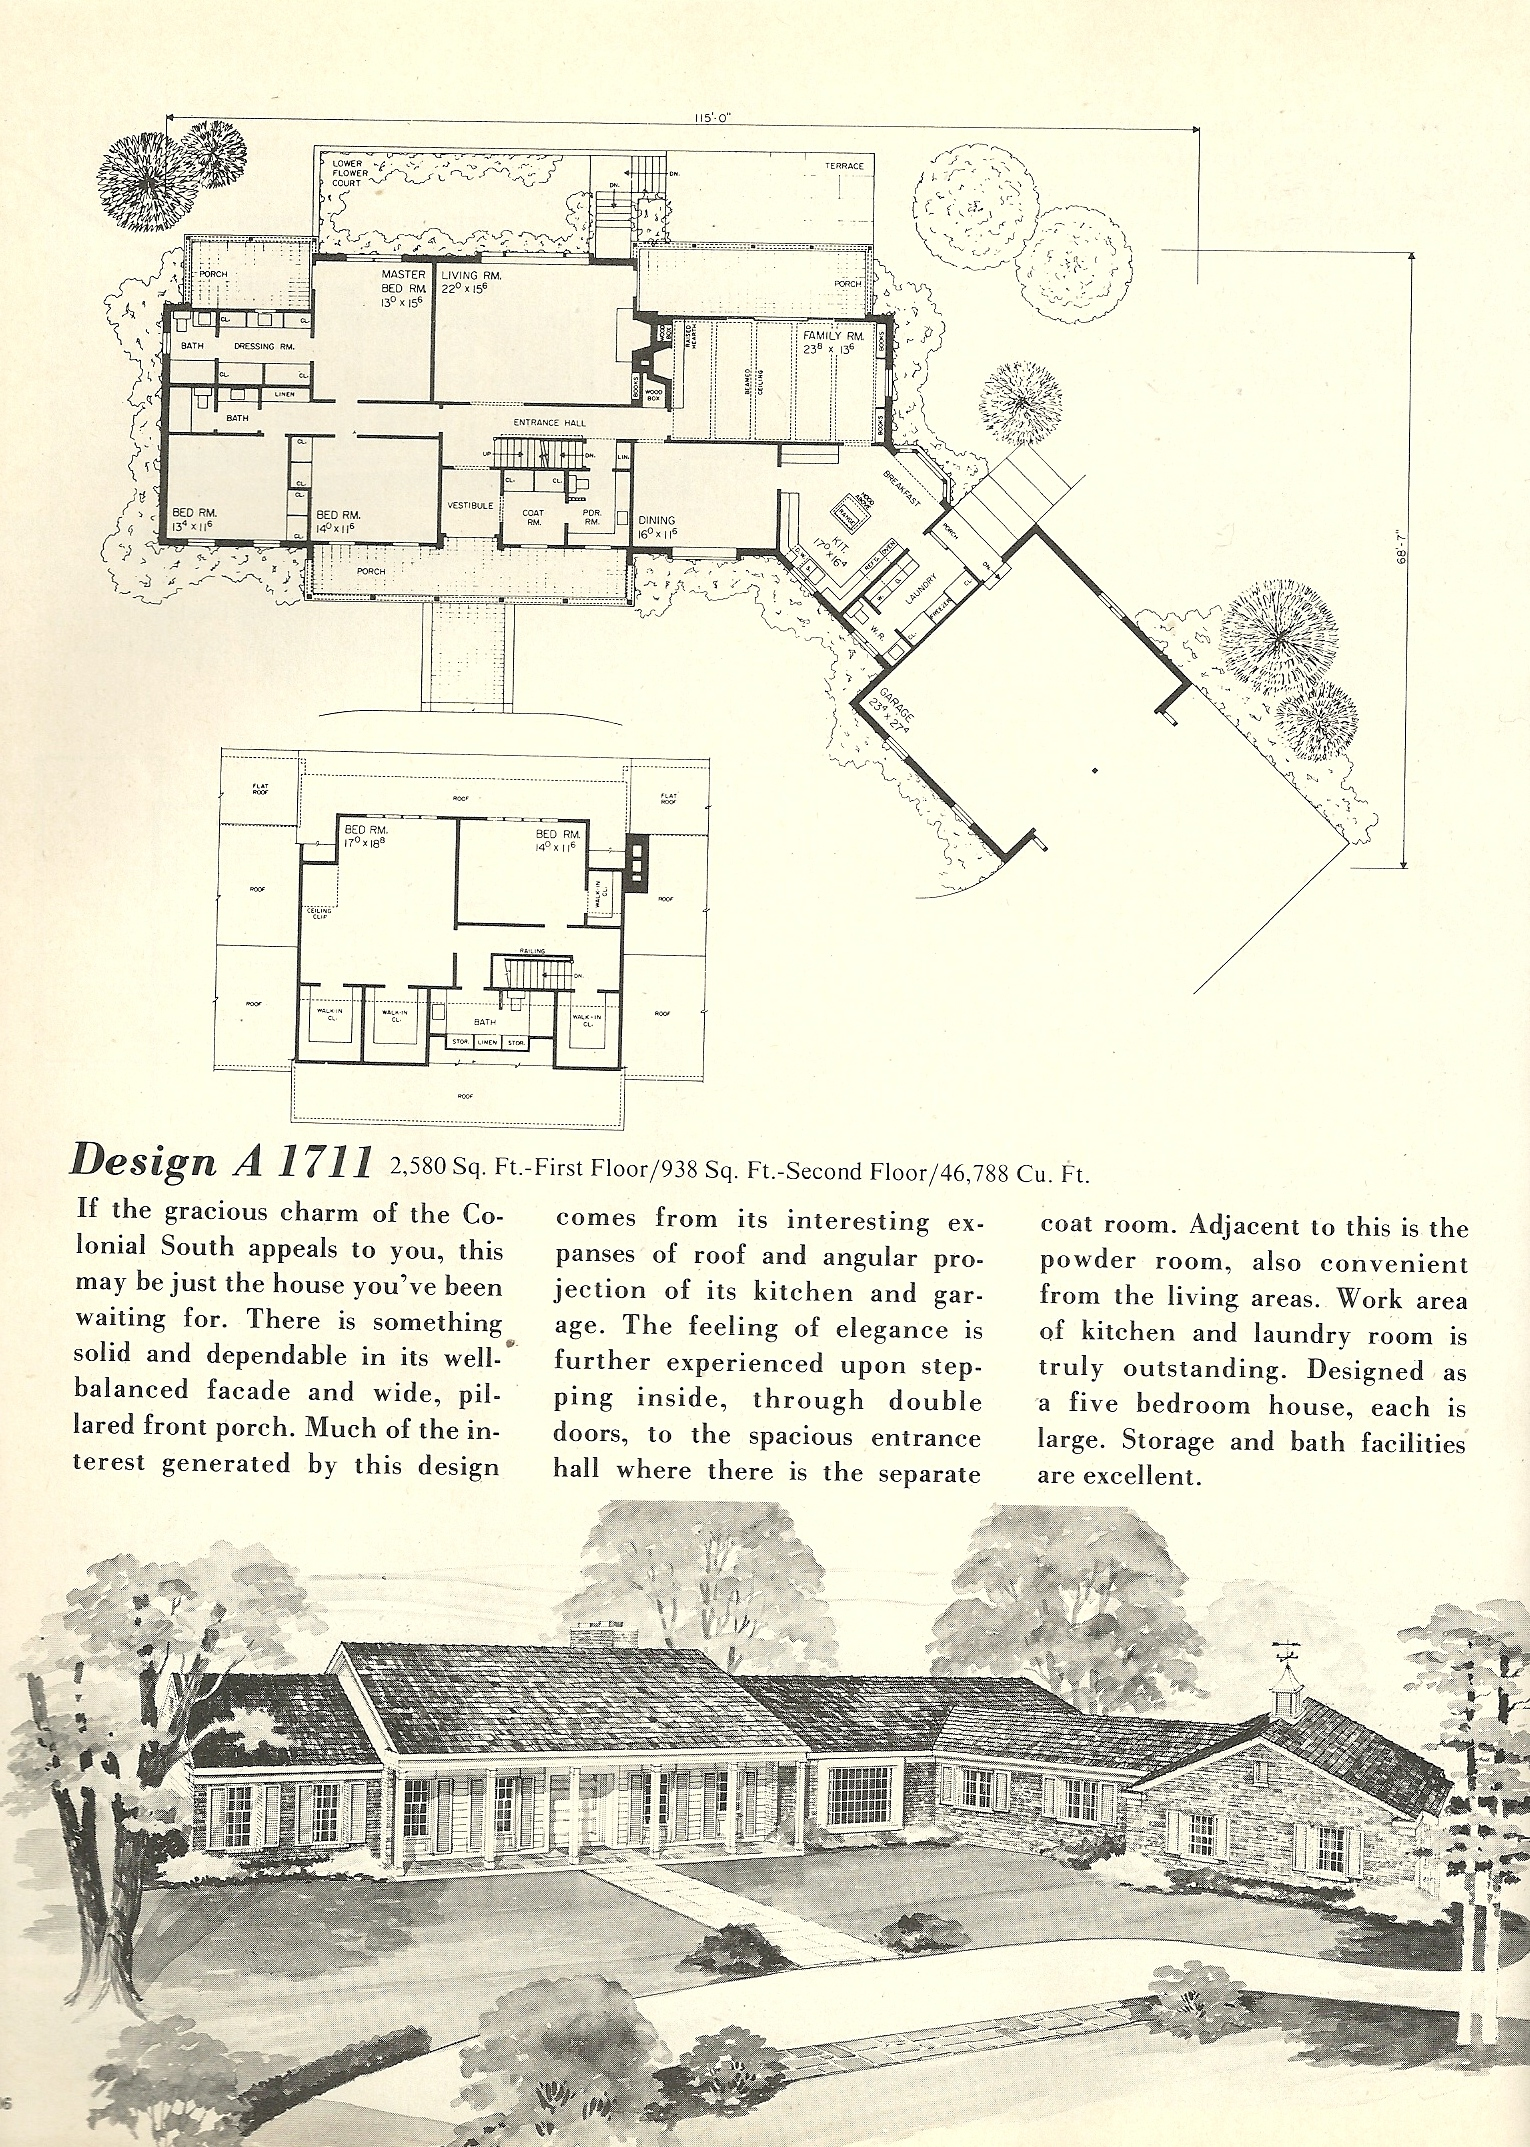 Vintage house plans 1970s early american southern Early american home plans